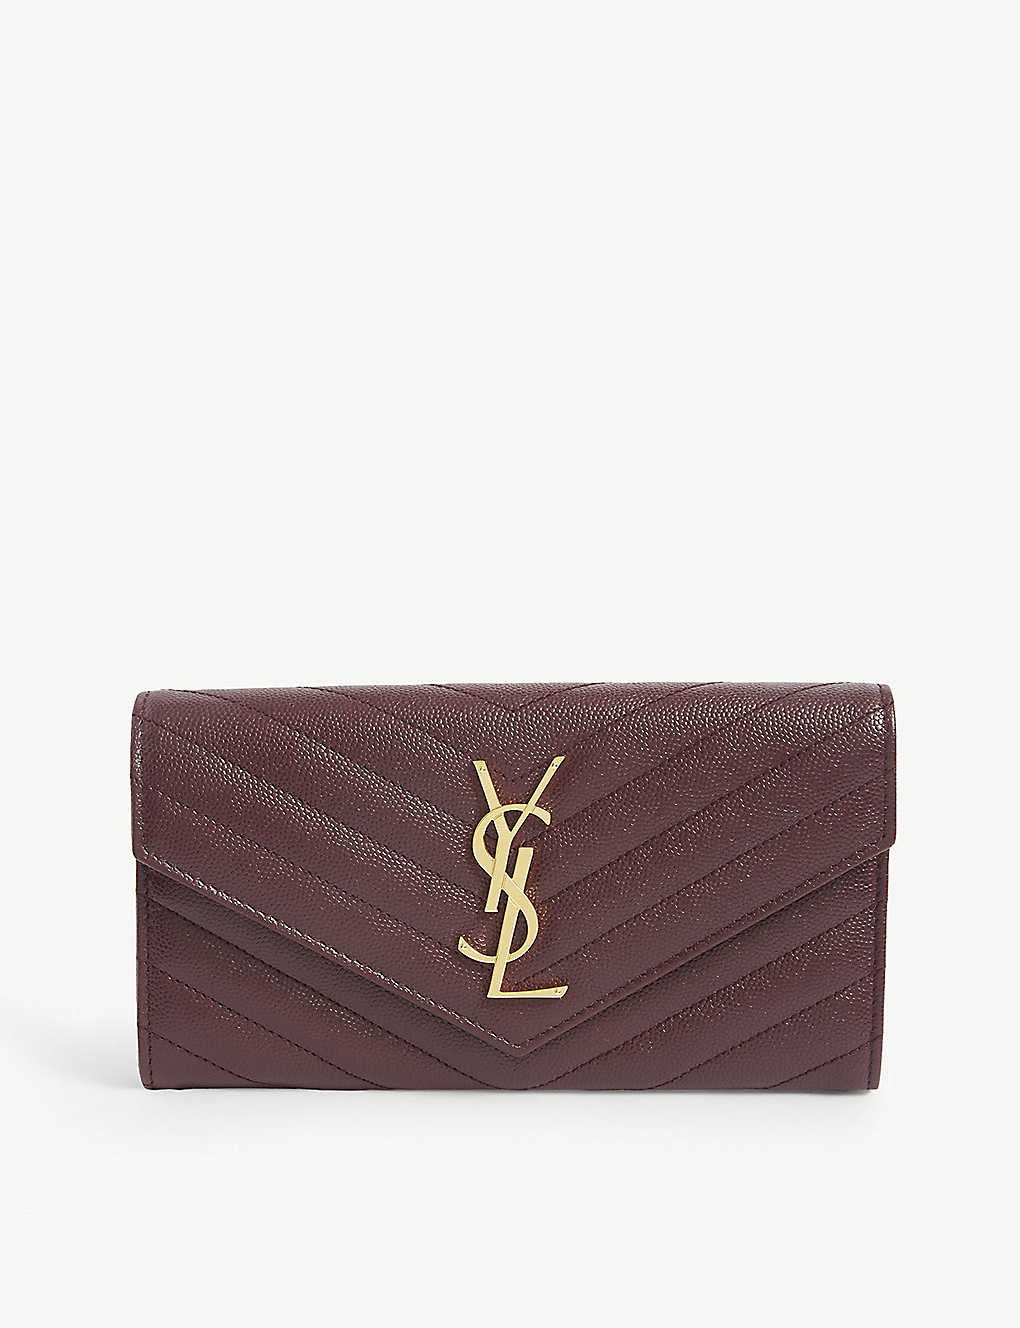 SAINT LAURENT: Monogrammed quilted leather wallet